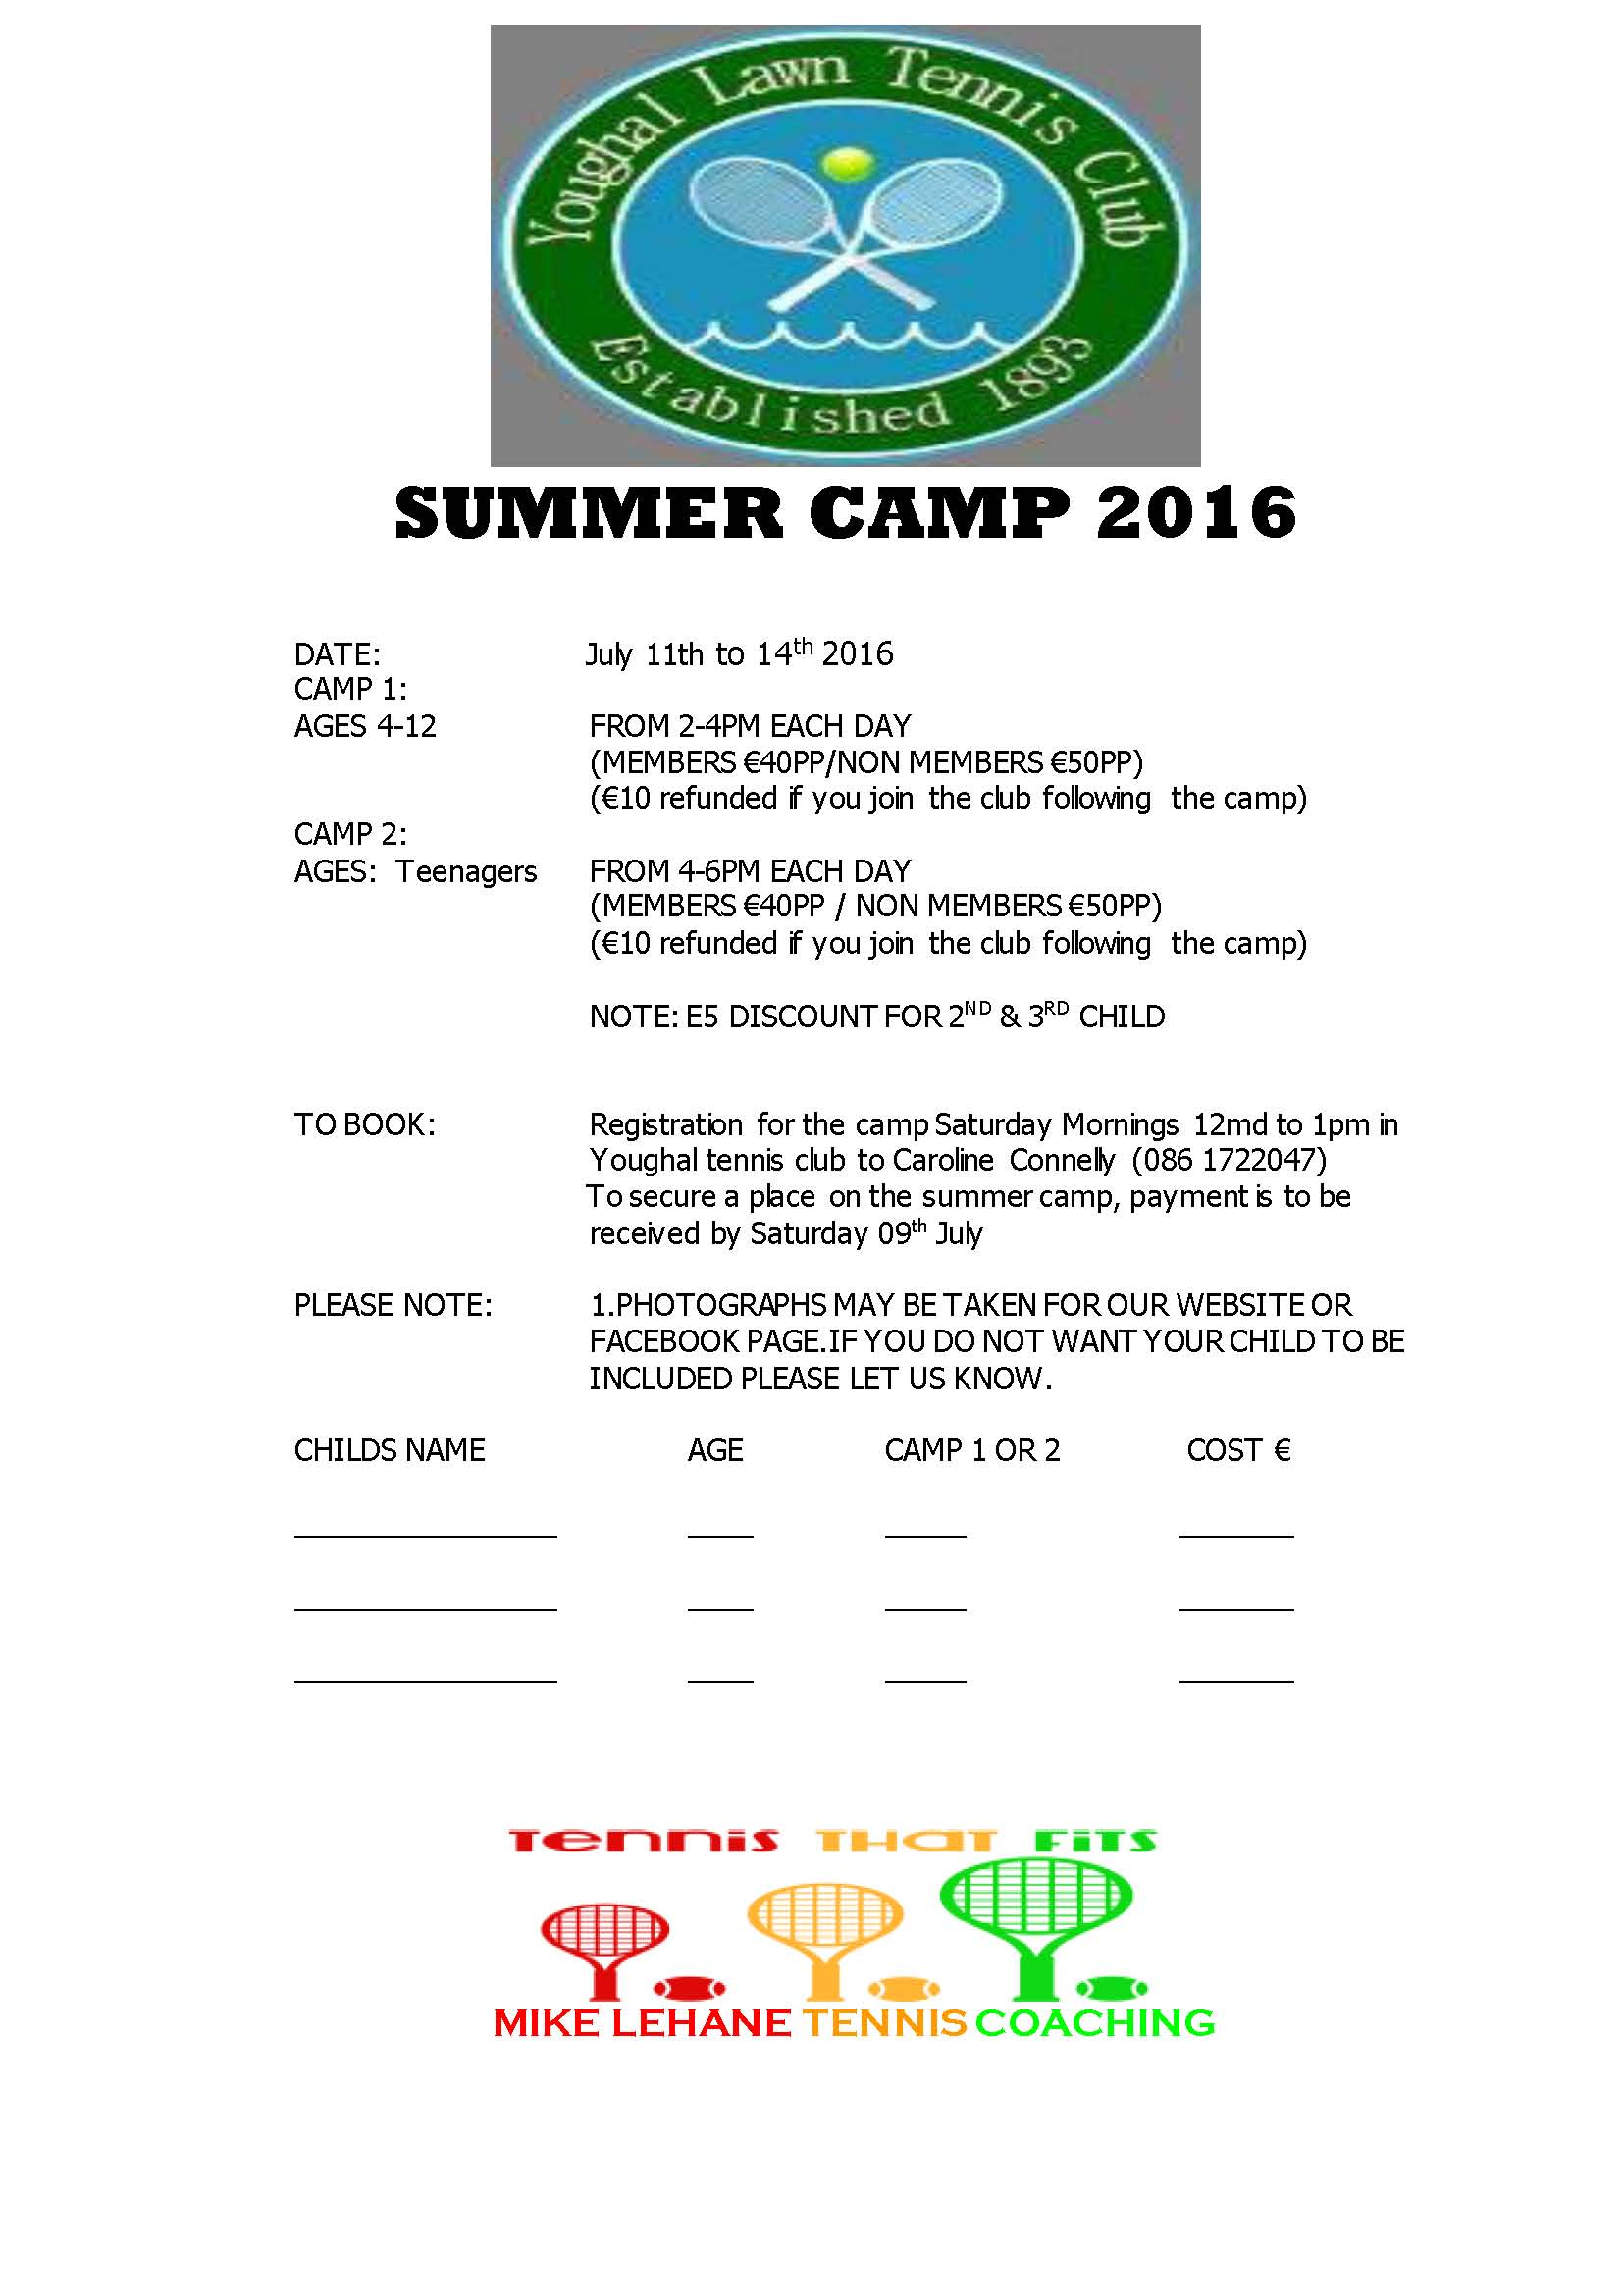 YOUGHAL TC SUMMER CAMP 2016